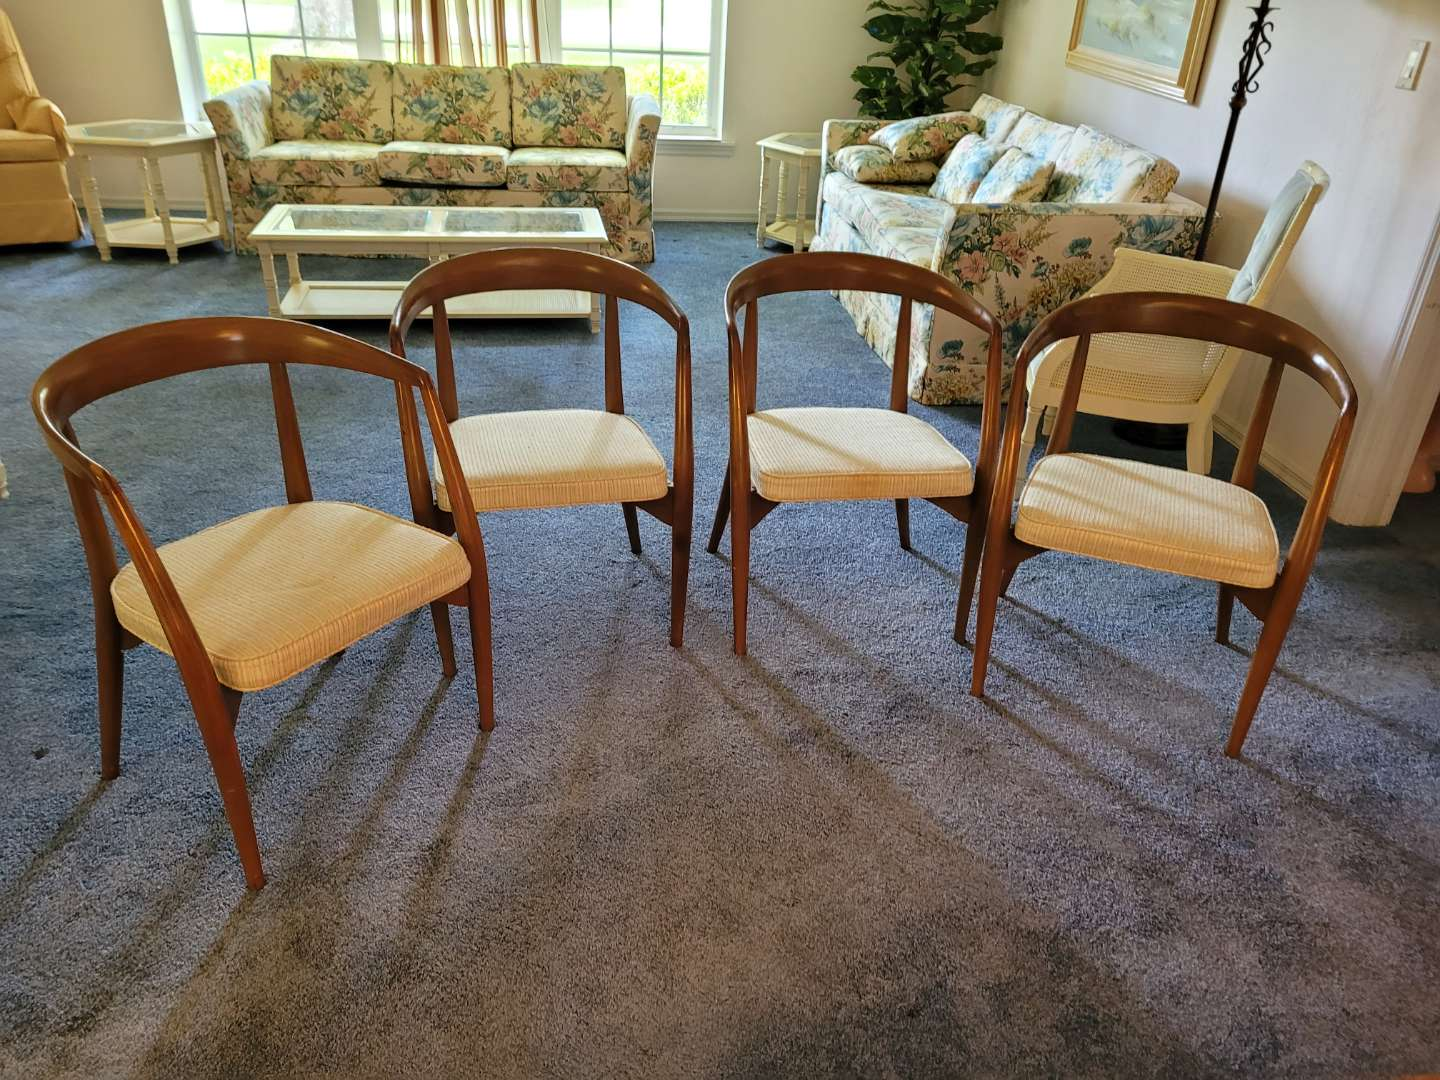 Lot # 484 (4) Vintage Mid Century Modern Curve Back Chairs